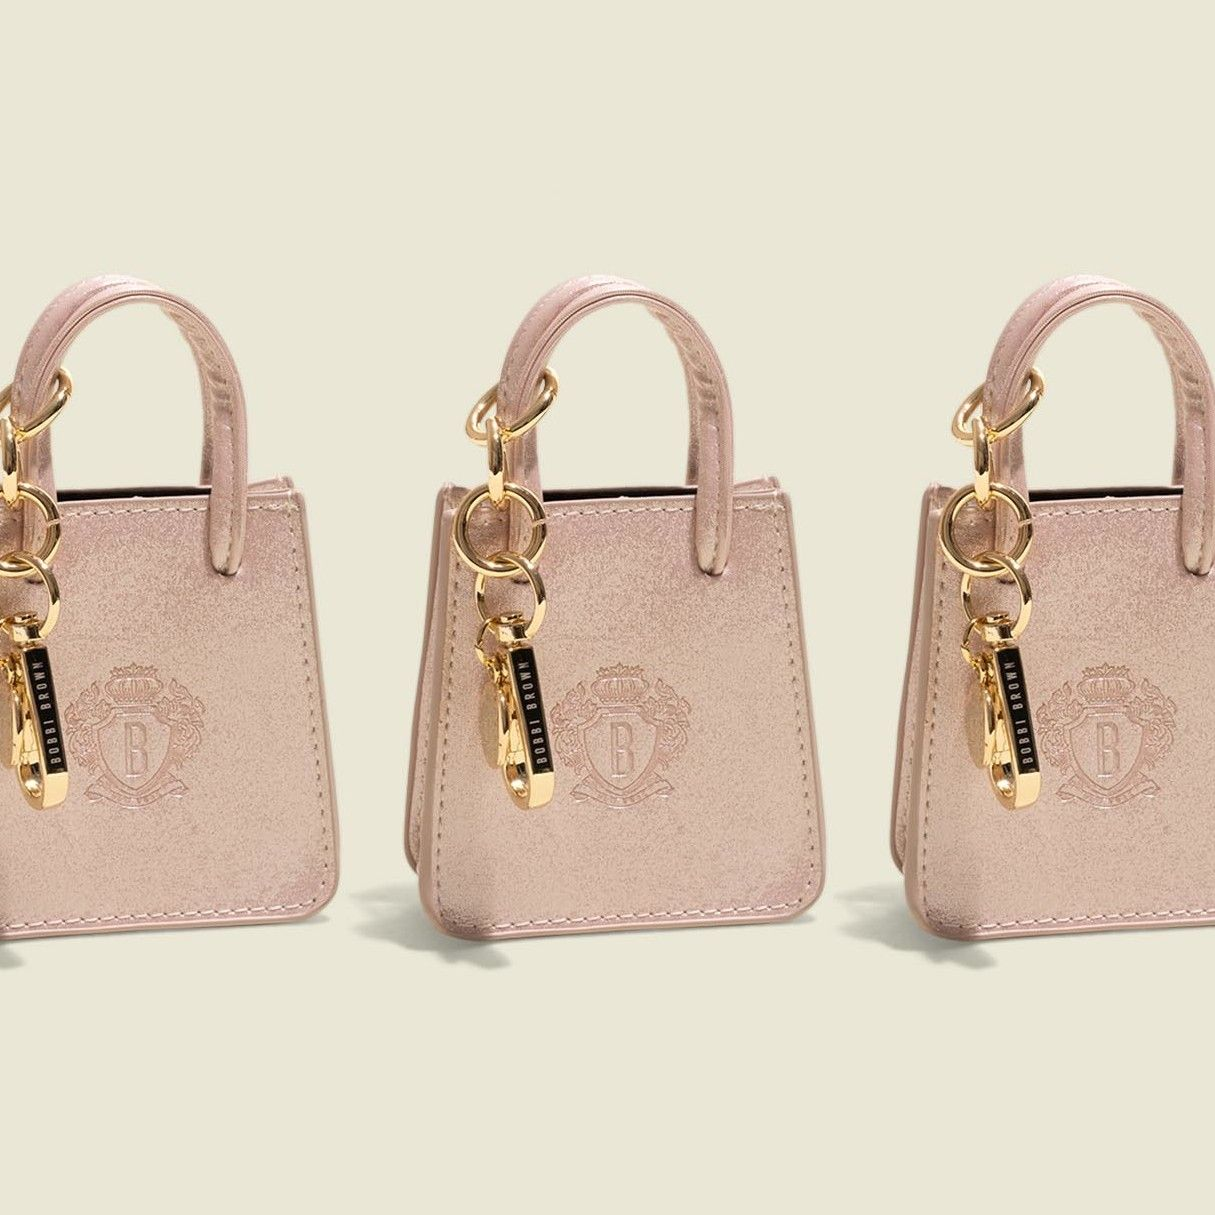 Tote bag with clasp